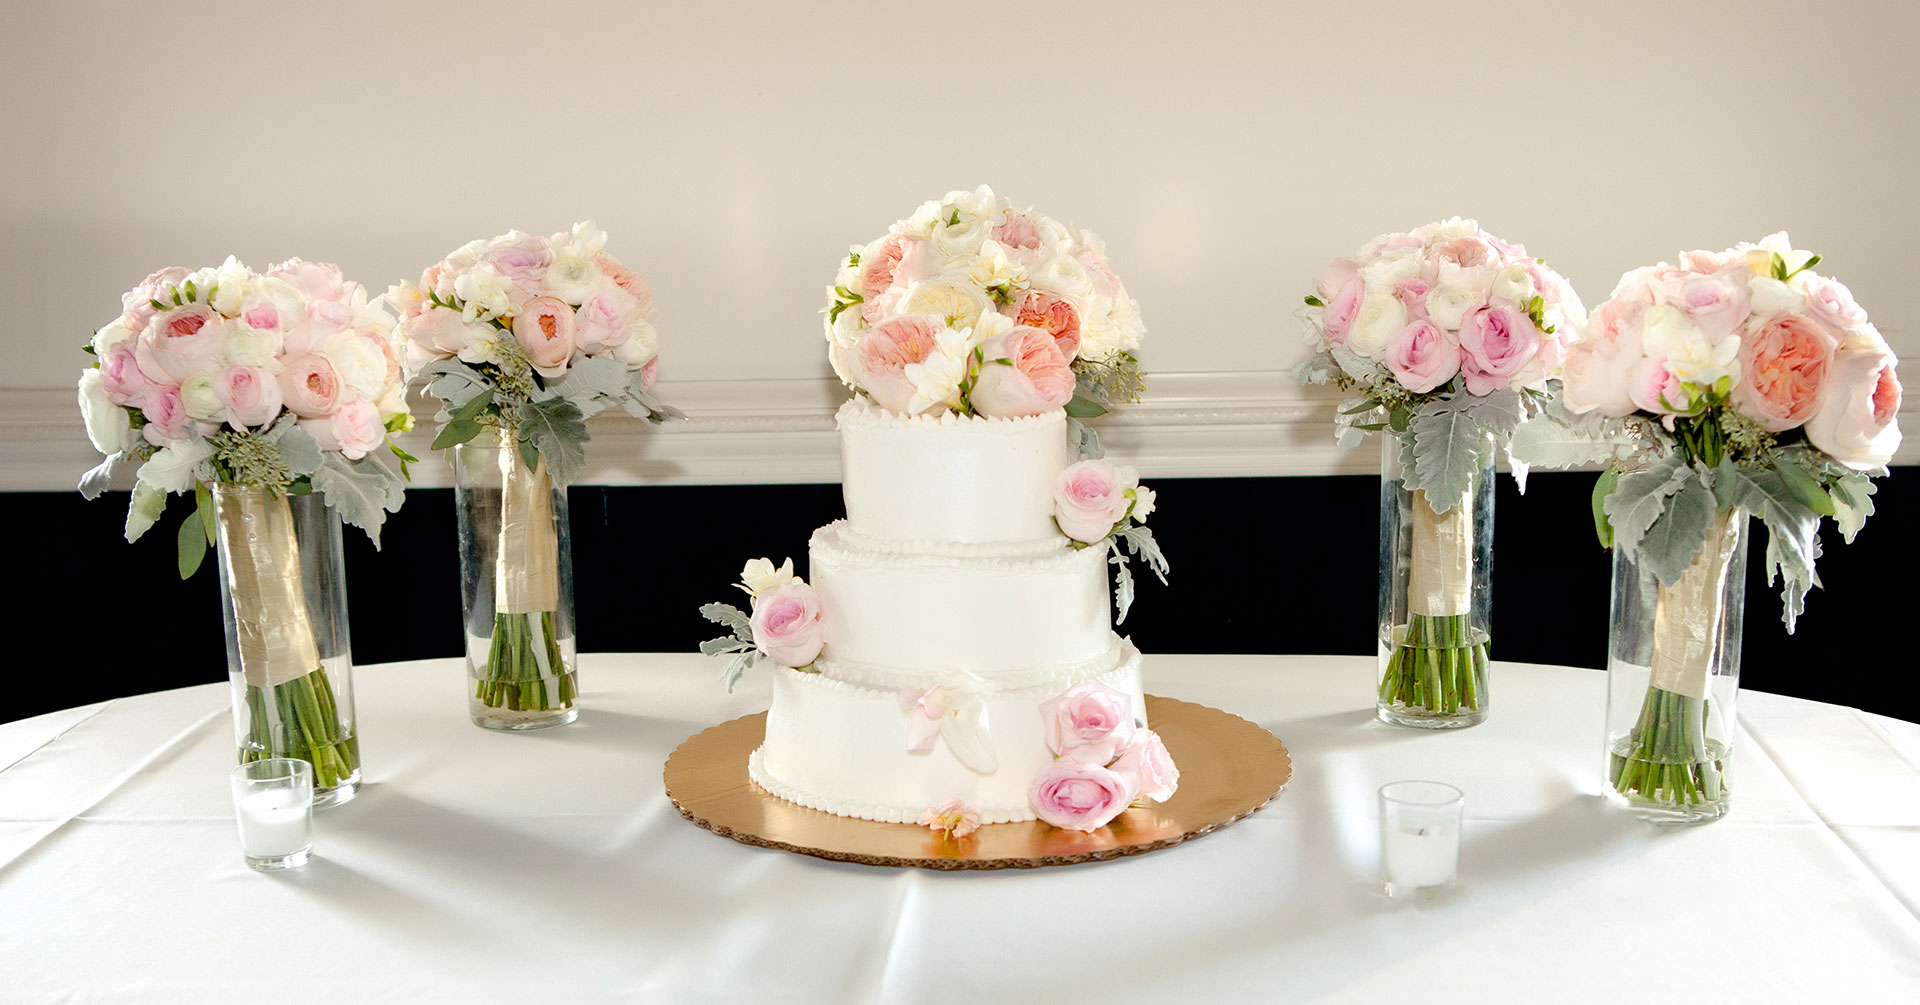 ALDOS BAKERY | Catering and Weddings